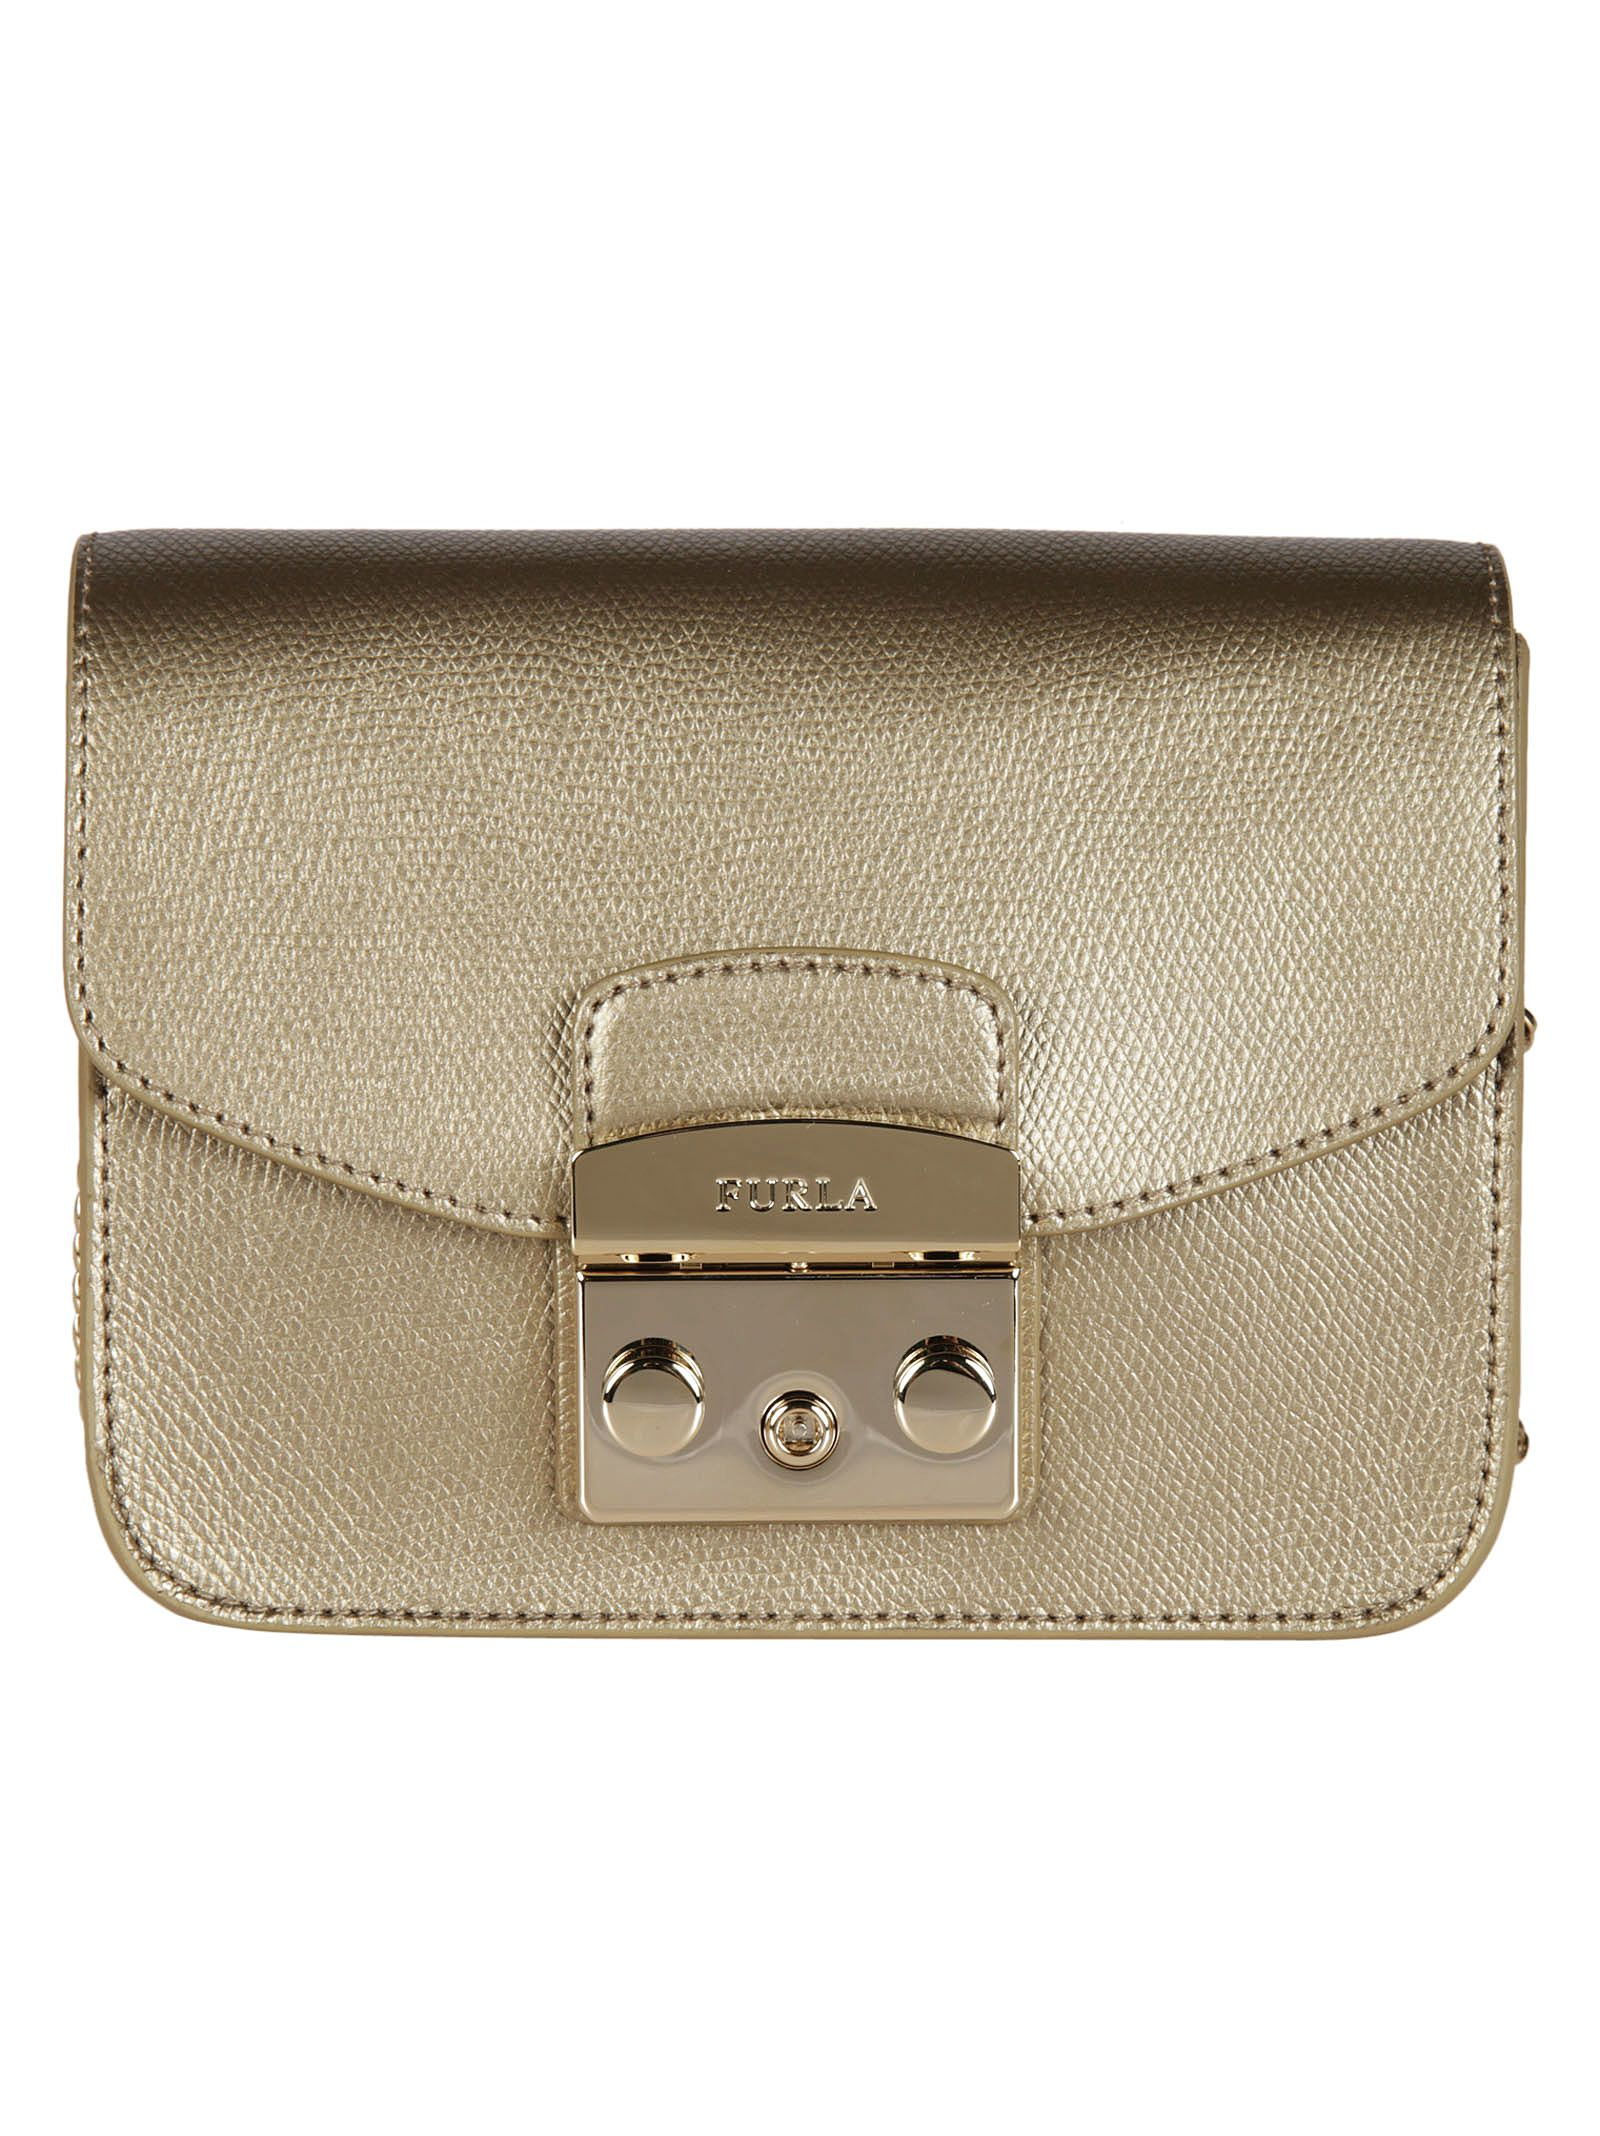 Furla mini Metropolis shoulder bag Buy Cheap Amazing Price Buy Cheap View ITMOBBP